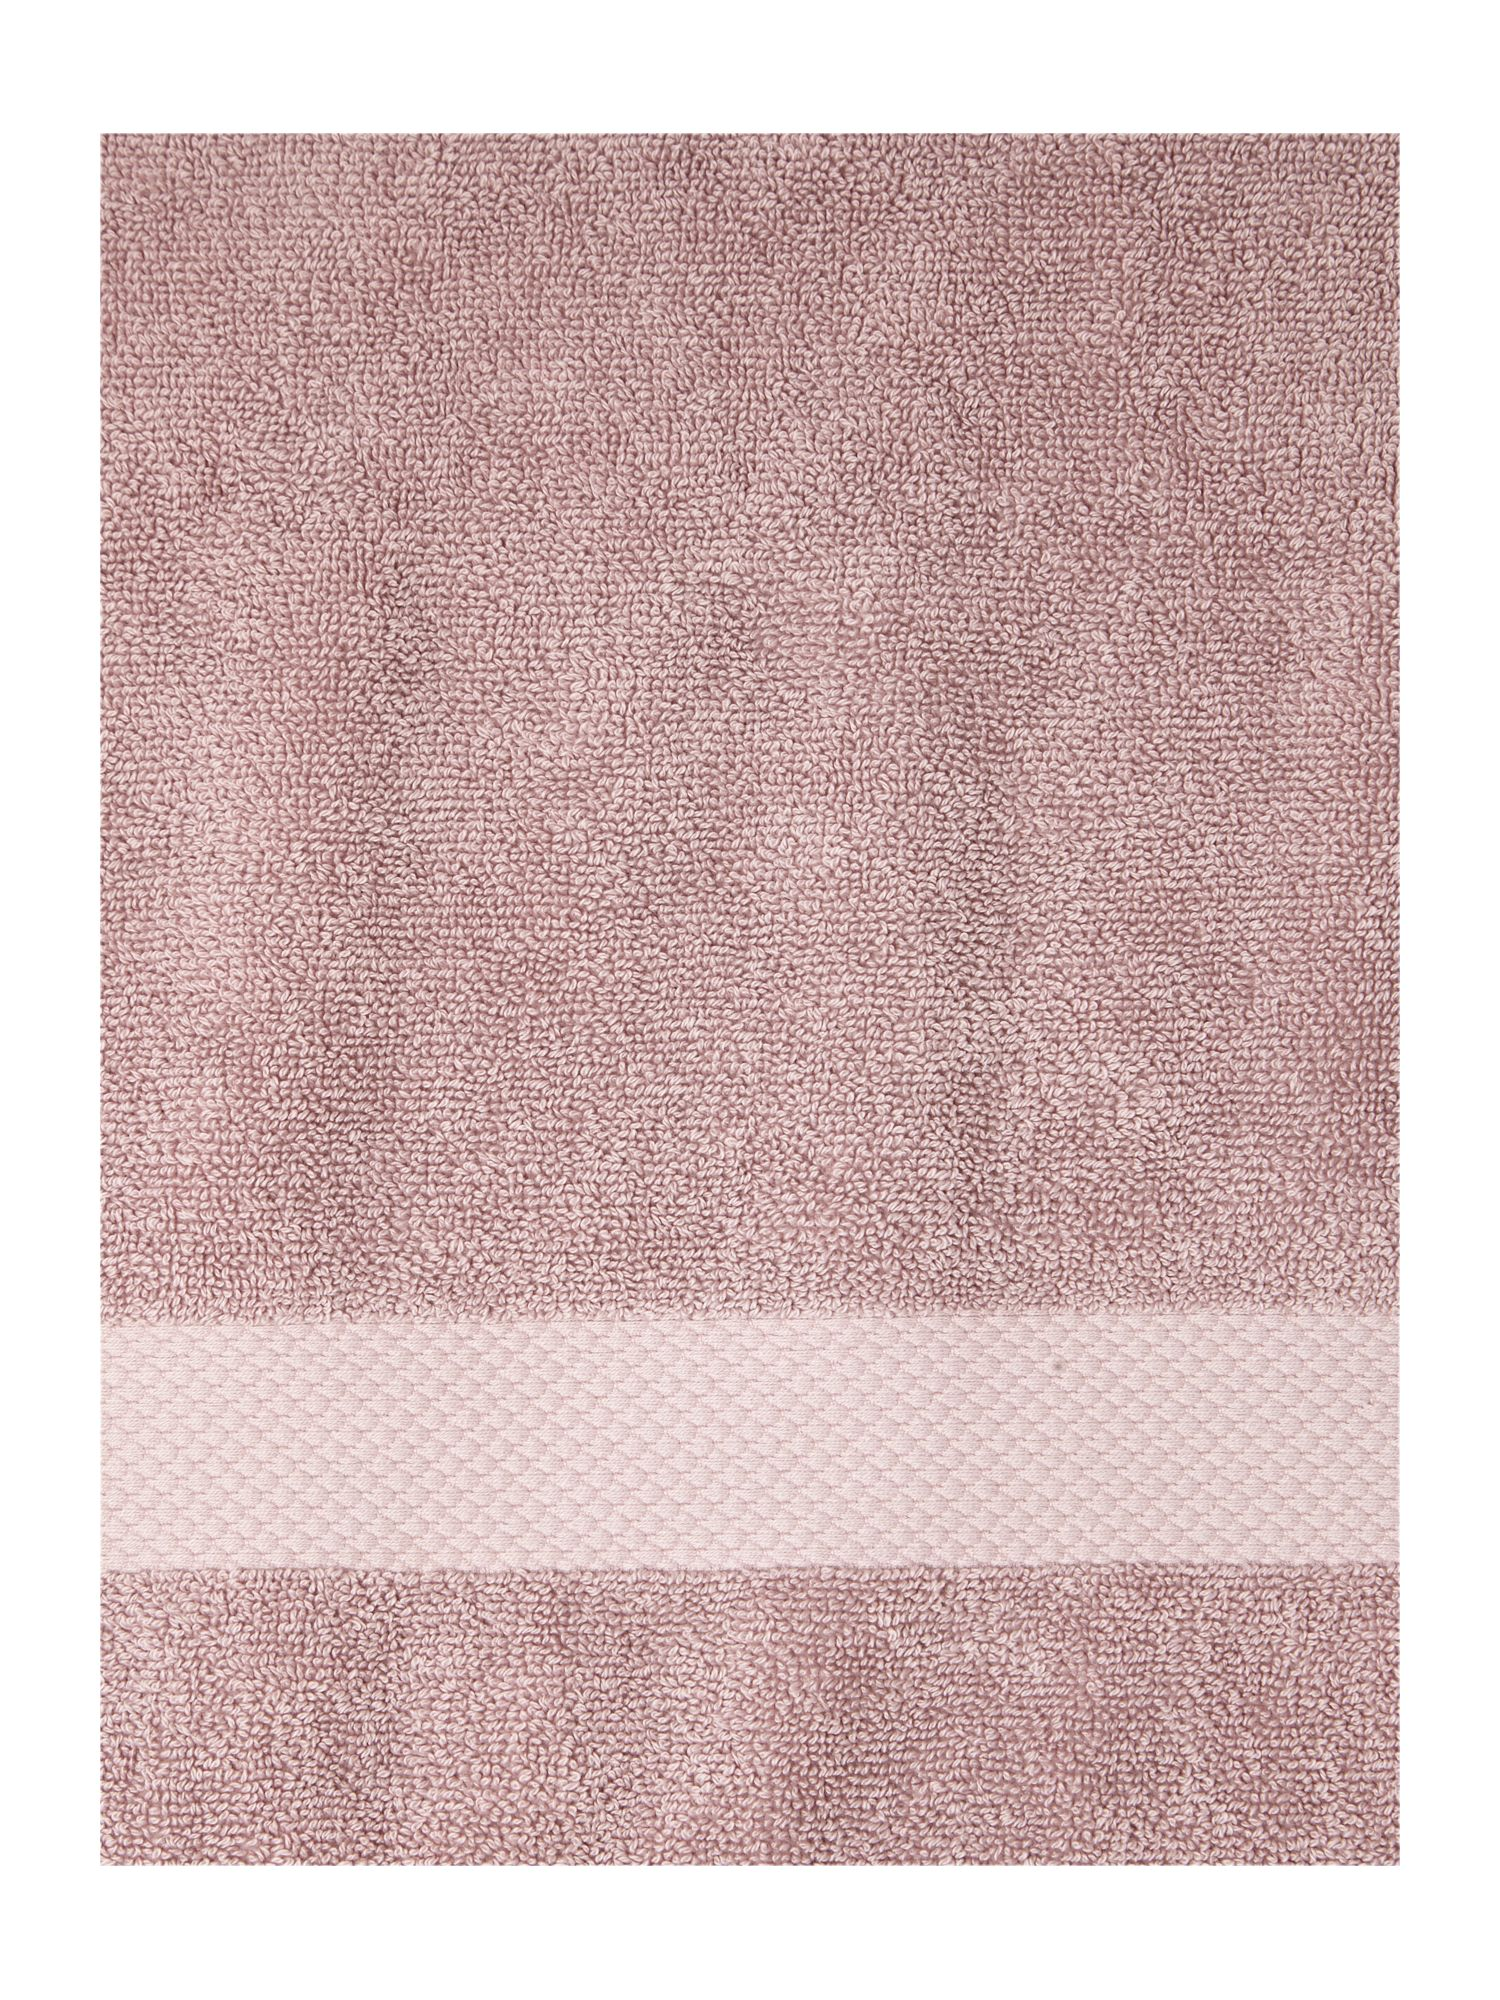 Egyptian cotton blush towels